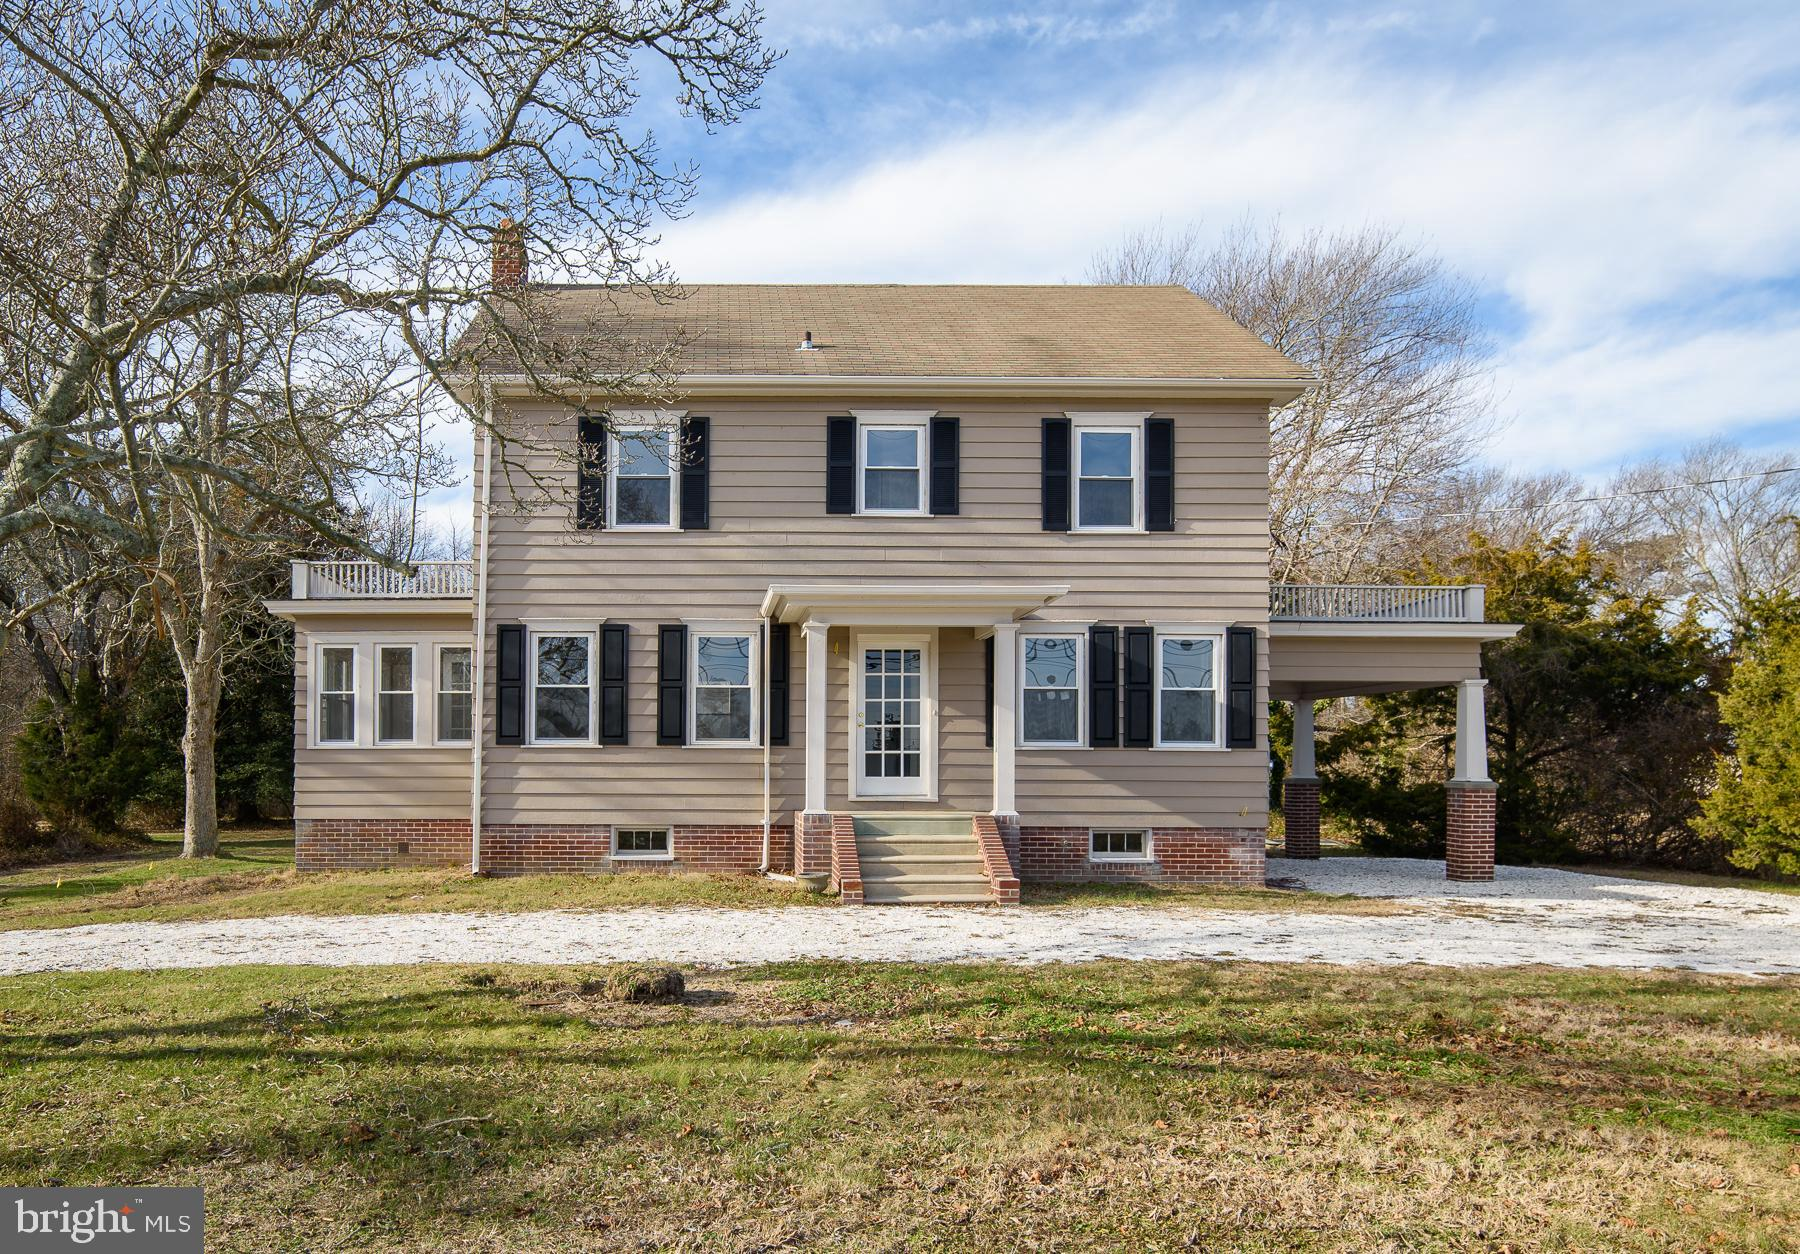 1181 S ROUTE 9 S, CAPE MAY COURT HOUSE, NJ 08210